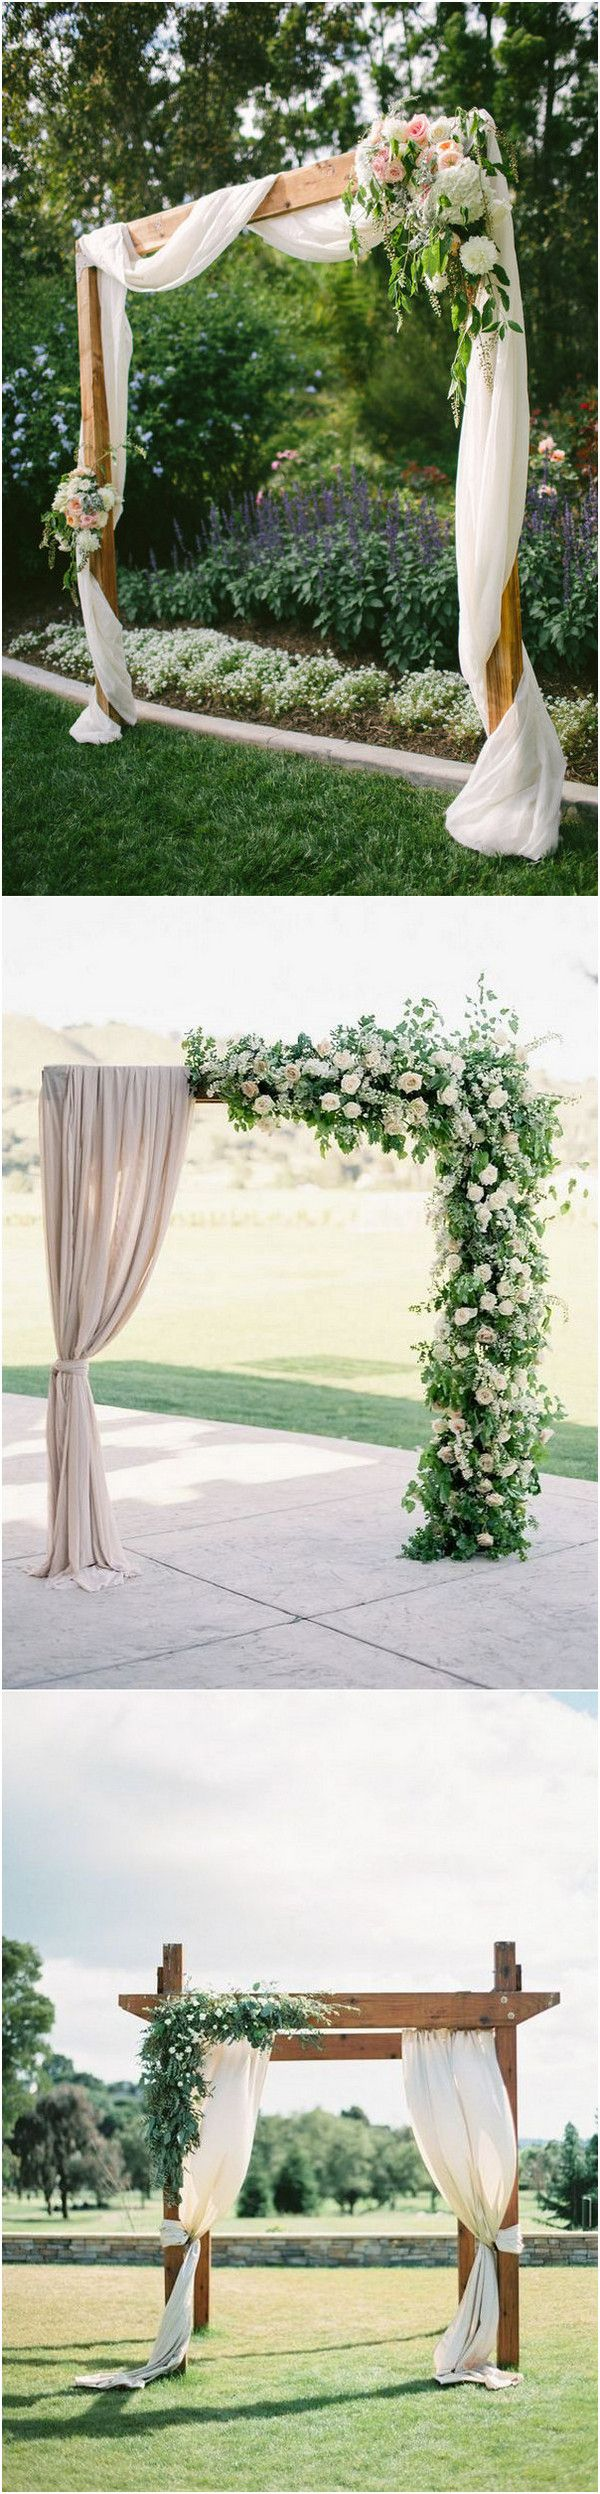 Trending-20 Gorgeous Wedding Ceremony Ideas with Draped Fabric for 2019